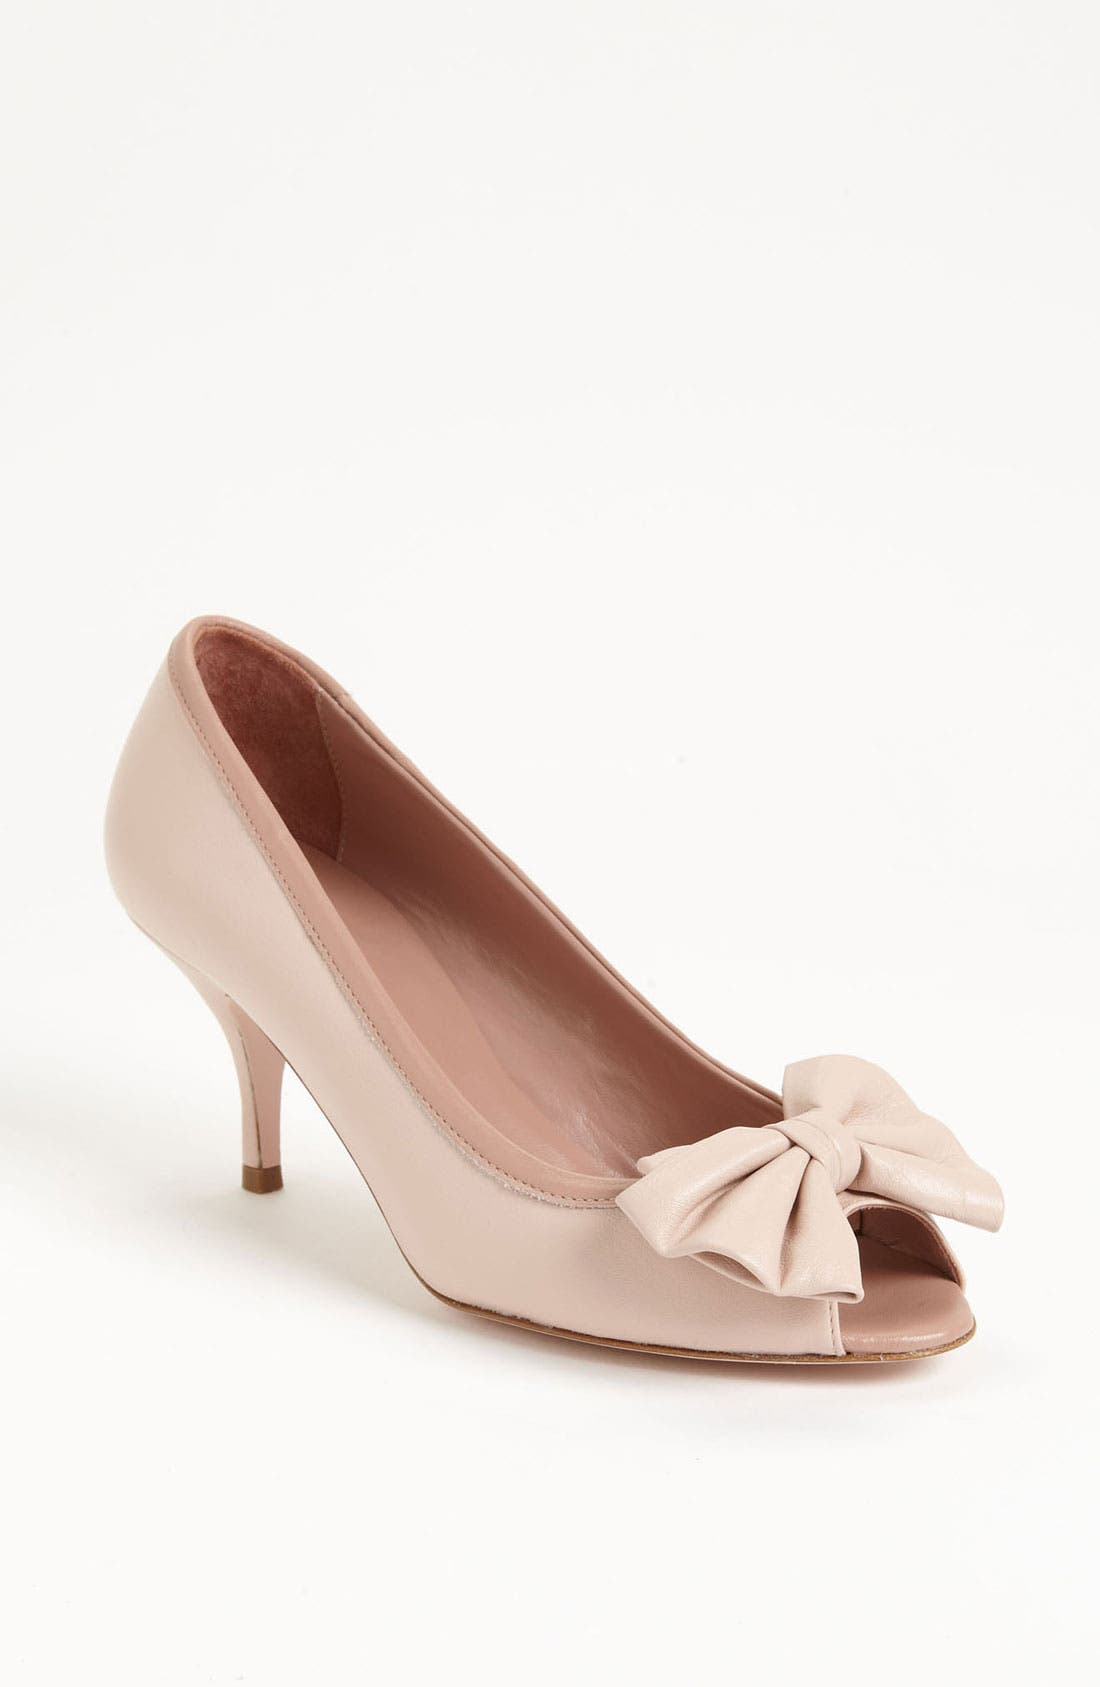 Main Image - RED Valentino Peep Toe Pump